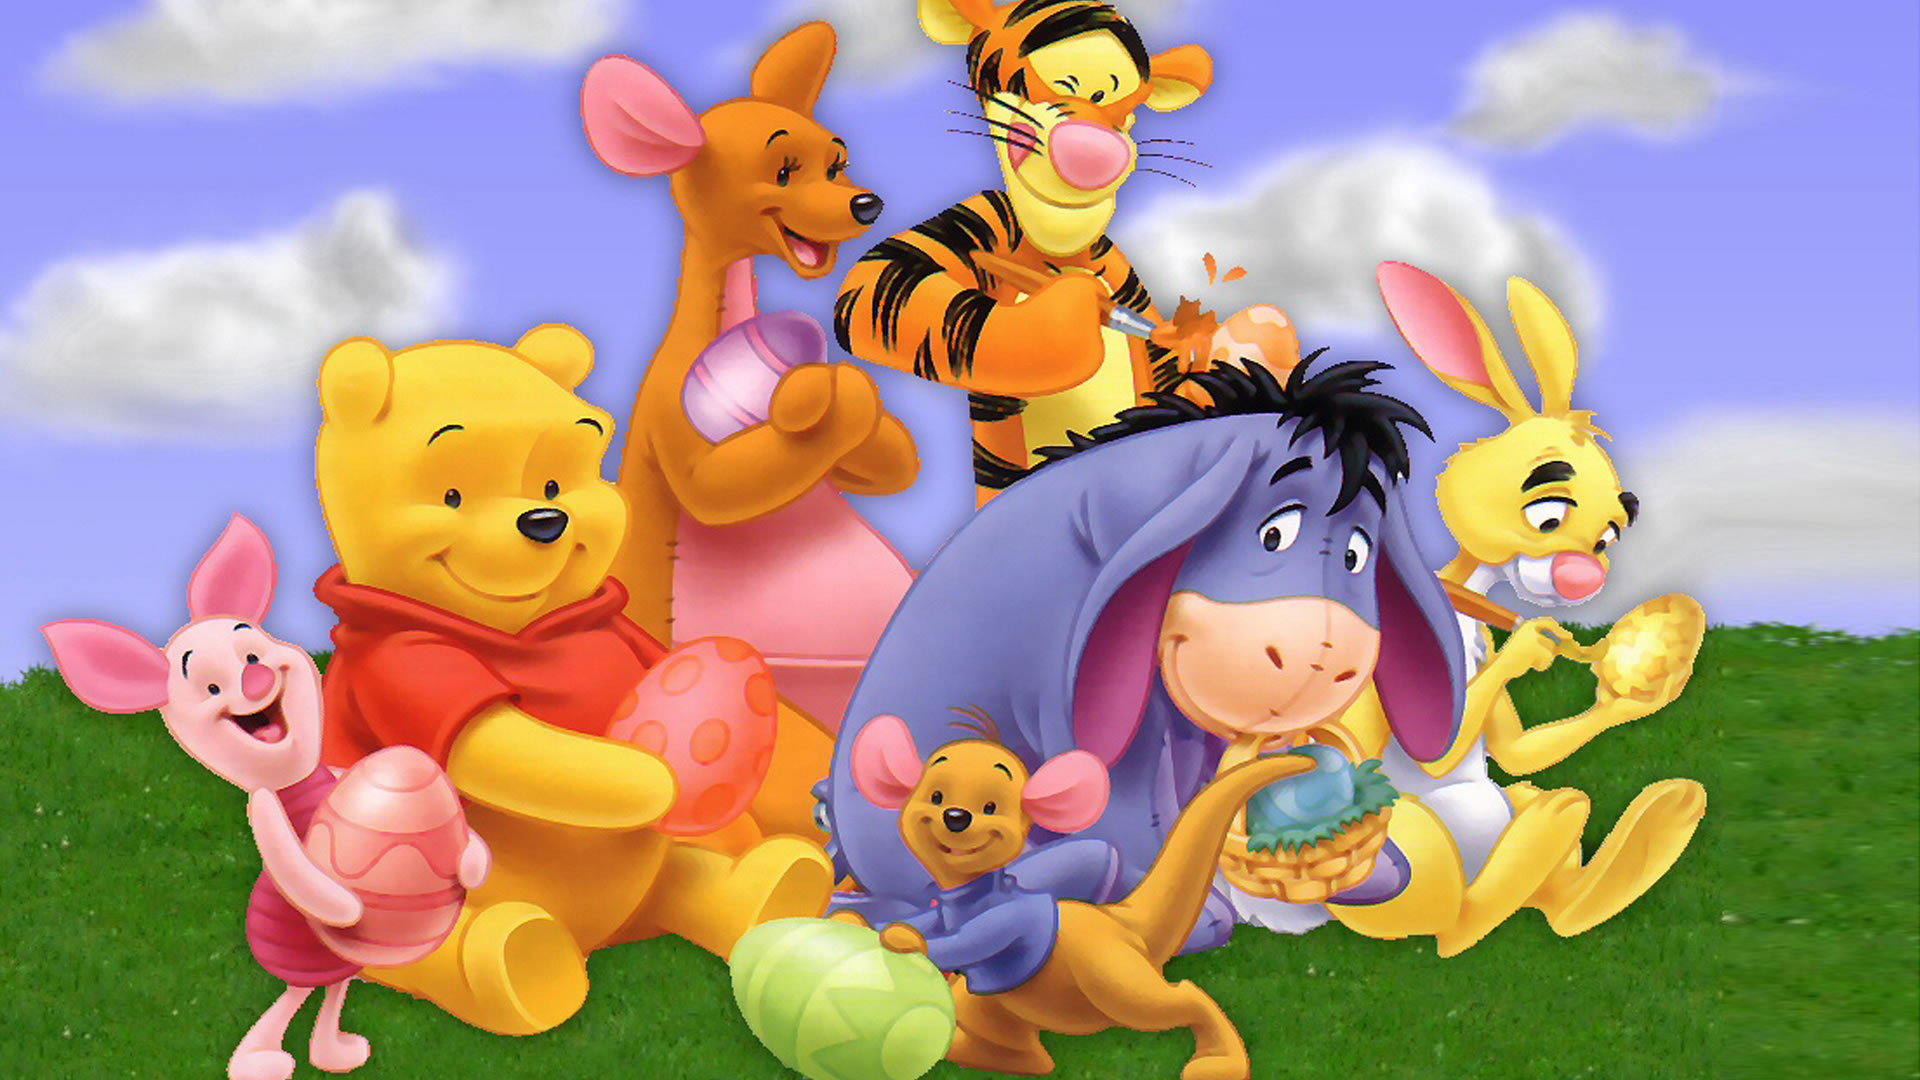 Image pooh wallpaper cast hdg winniepedia fandom pooh wallpaper cast hdg voltagebd Gallery